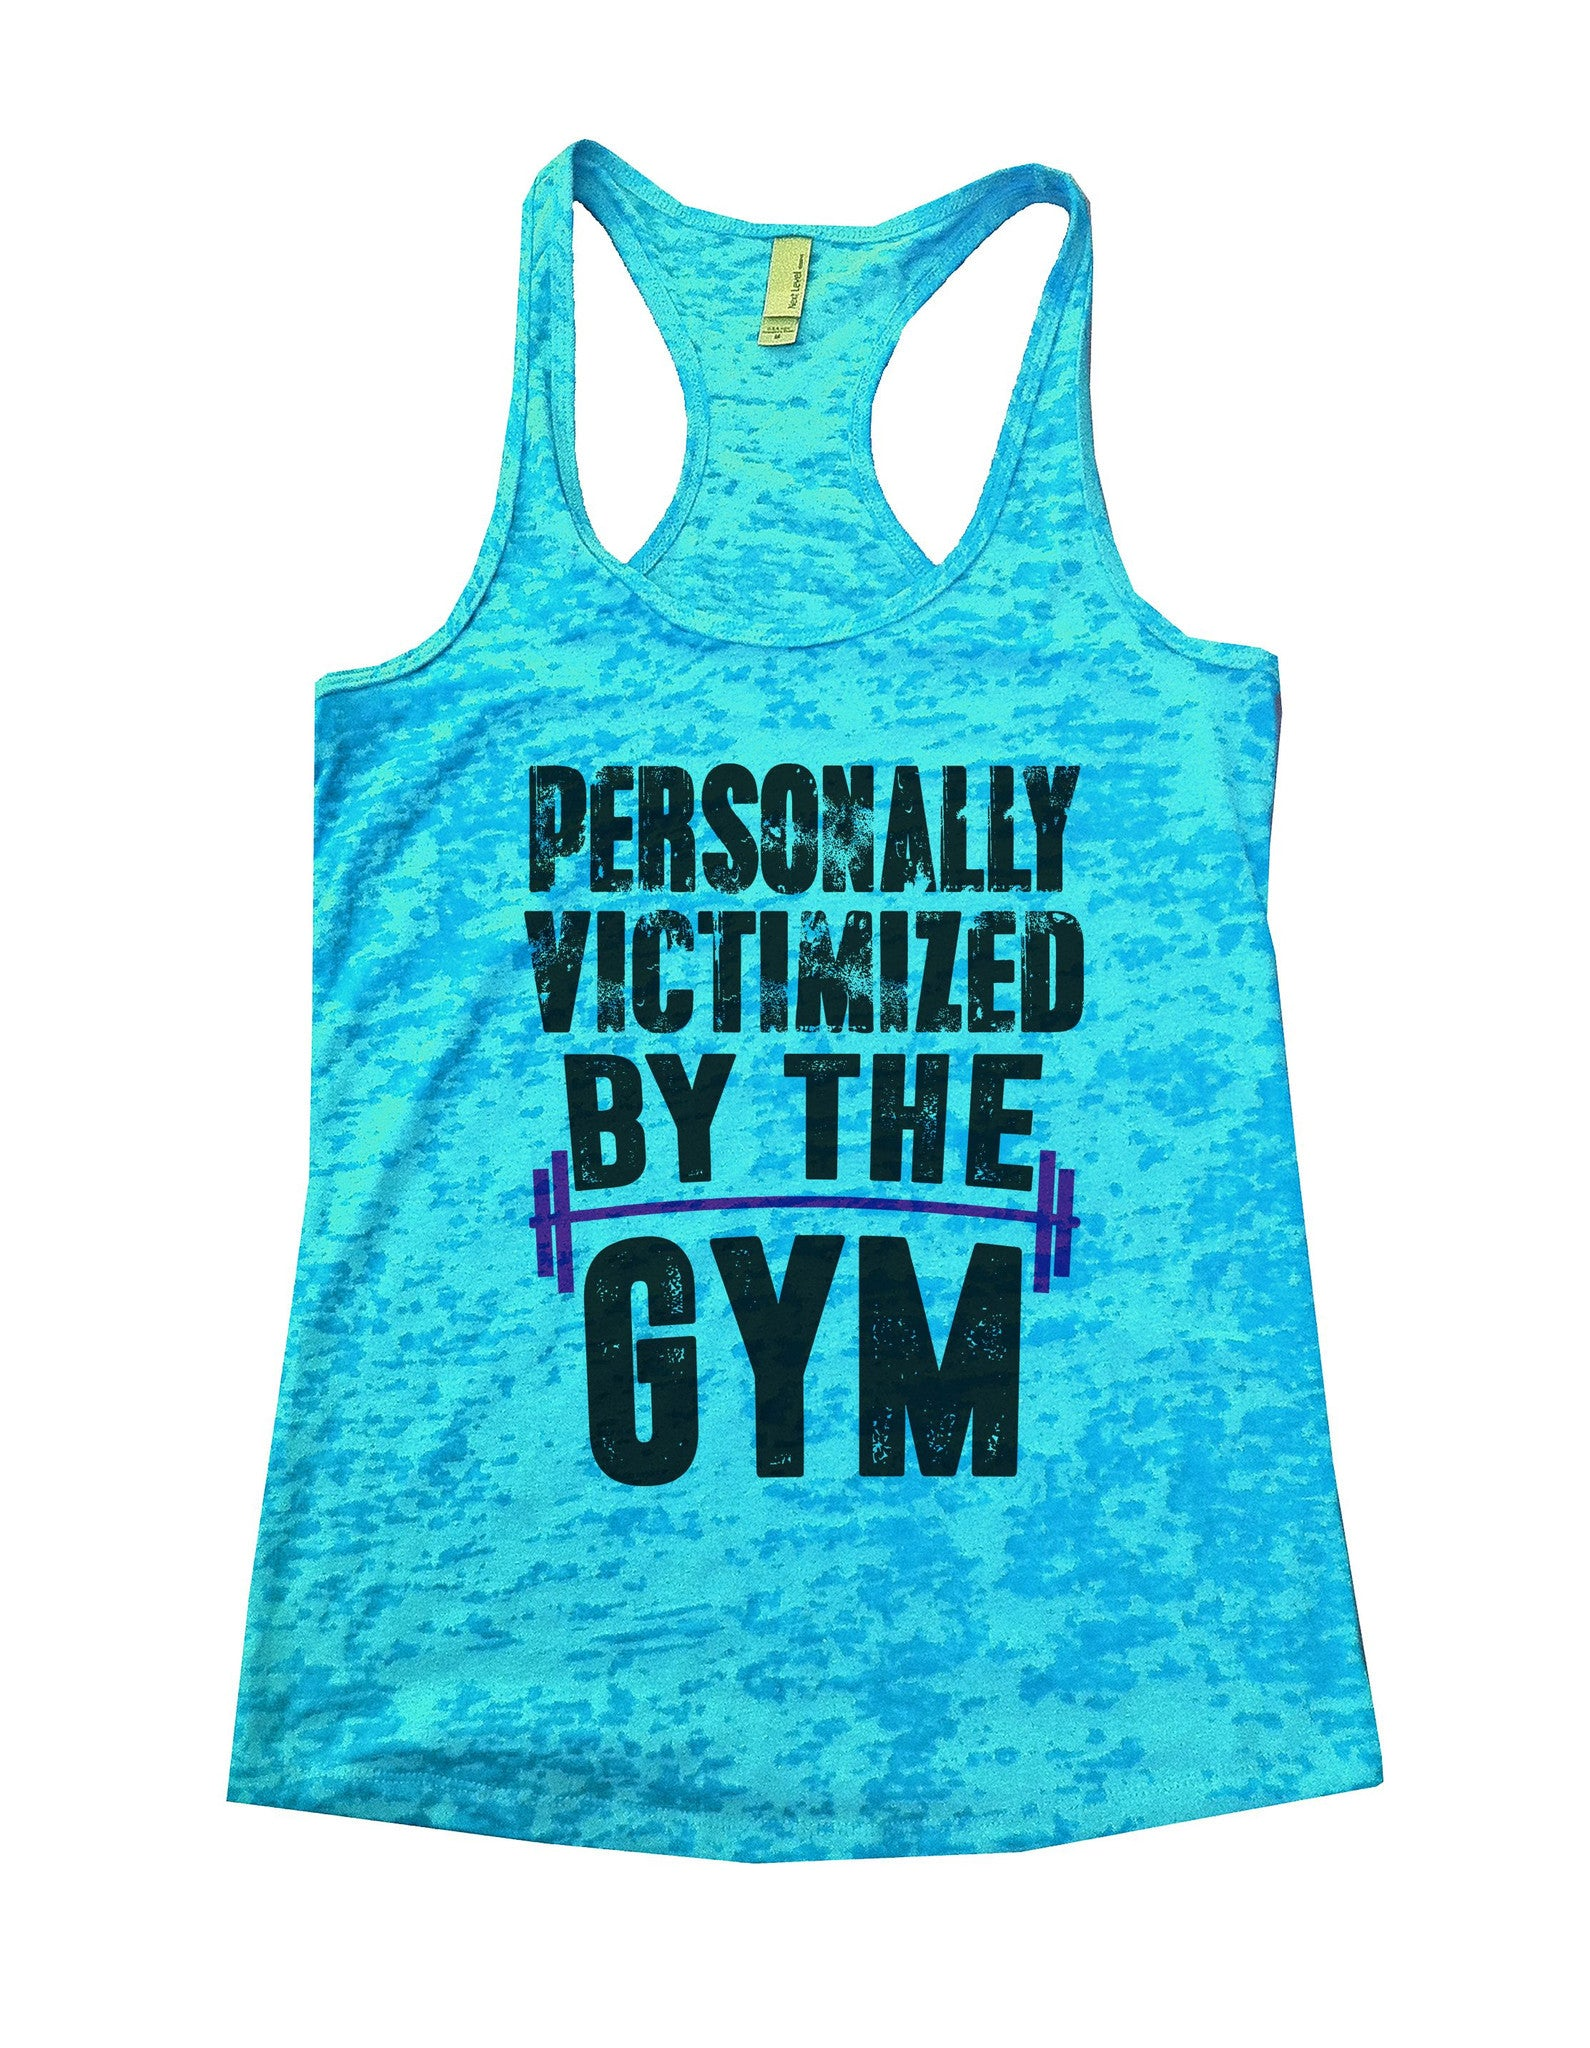 Personally Victimized By The Gym Burnout Tank Top By BurnoutTankTops.com - 1109 - Funny Shirts Tank Tops Burnouts and Triblends  - 4